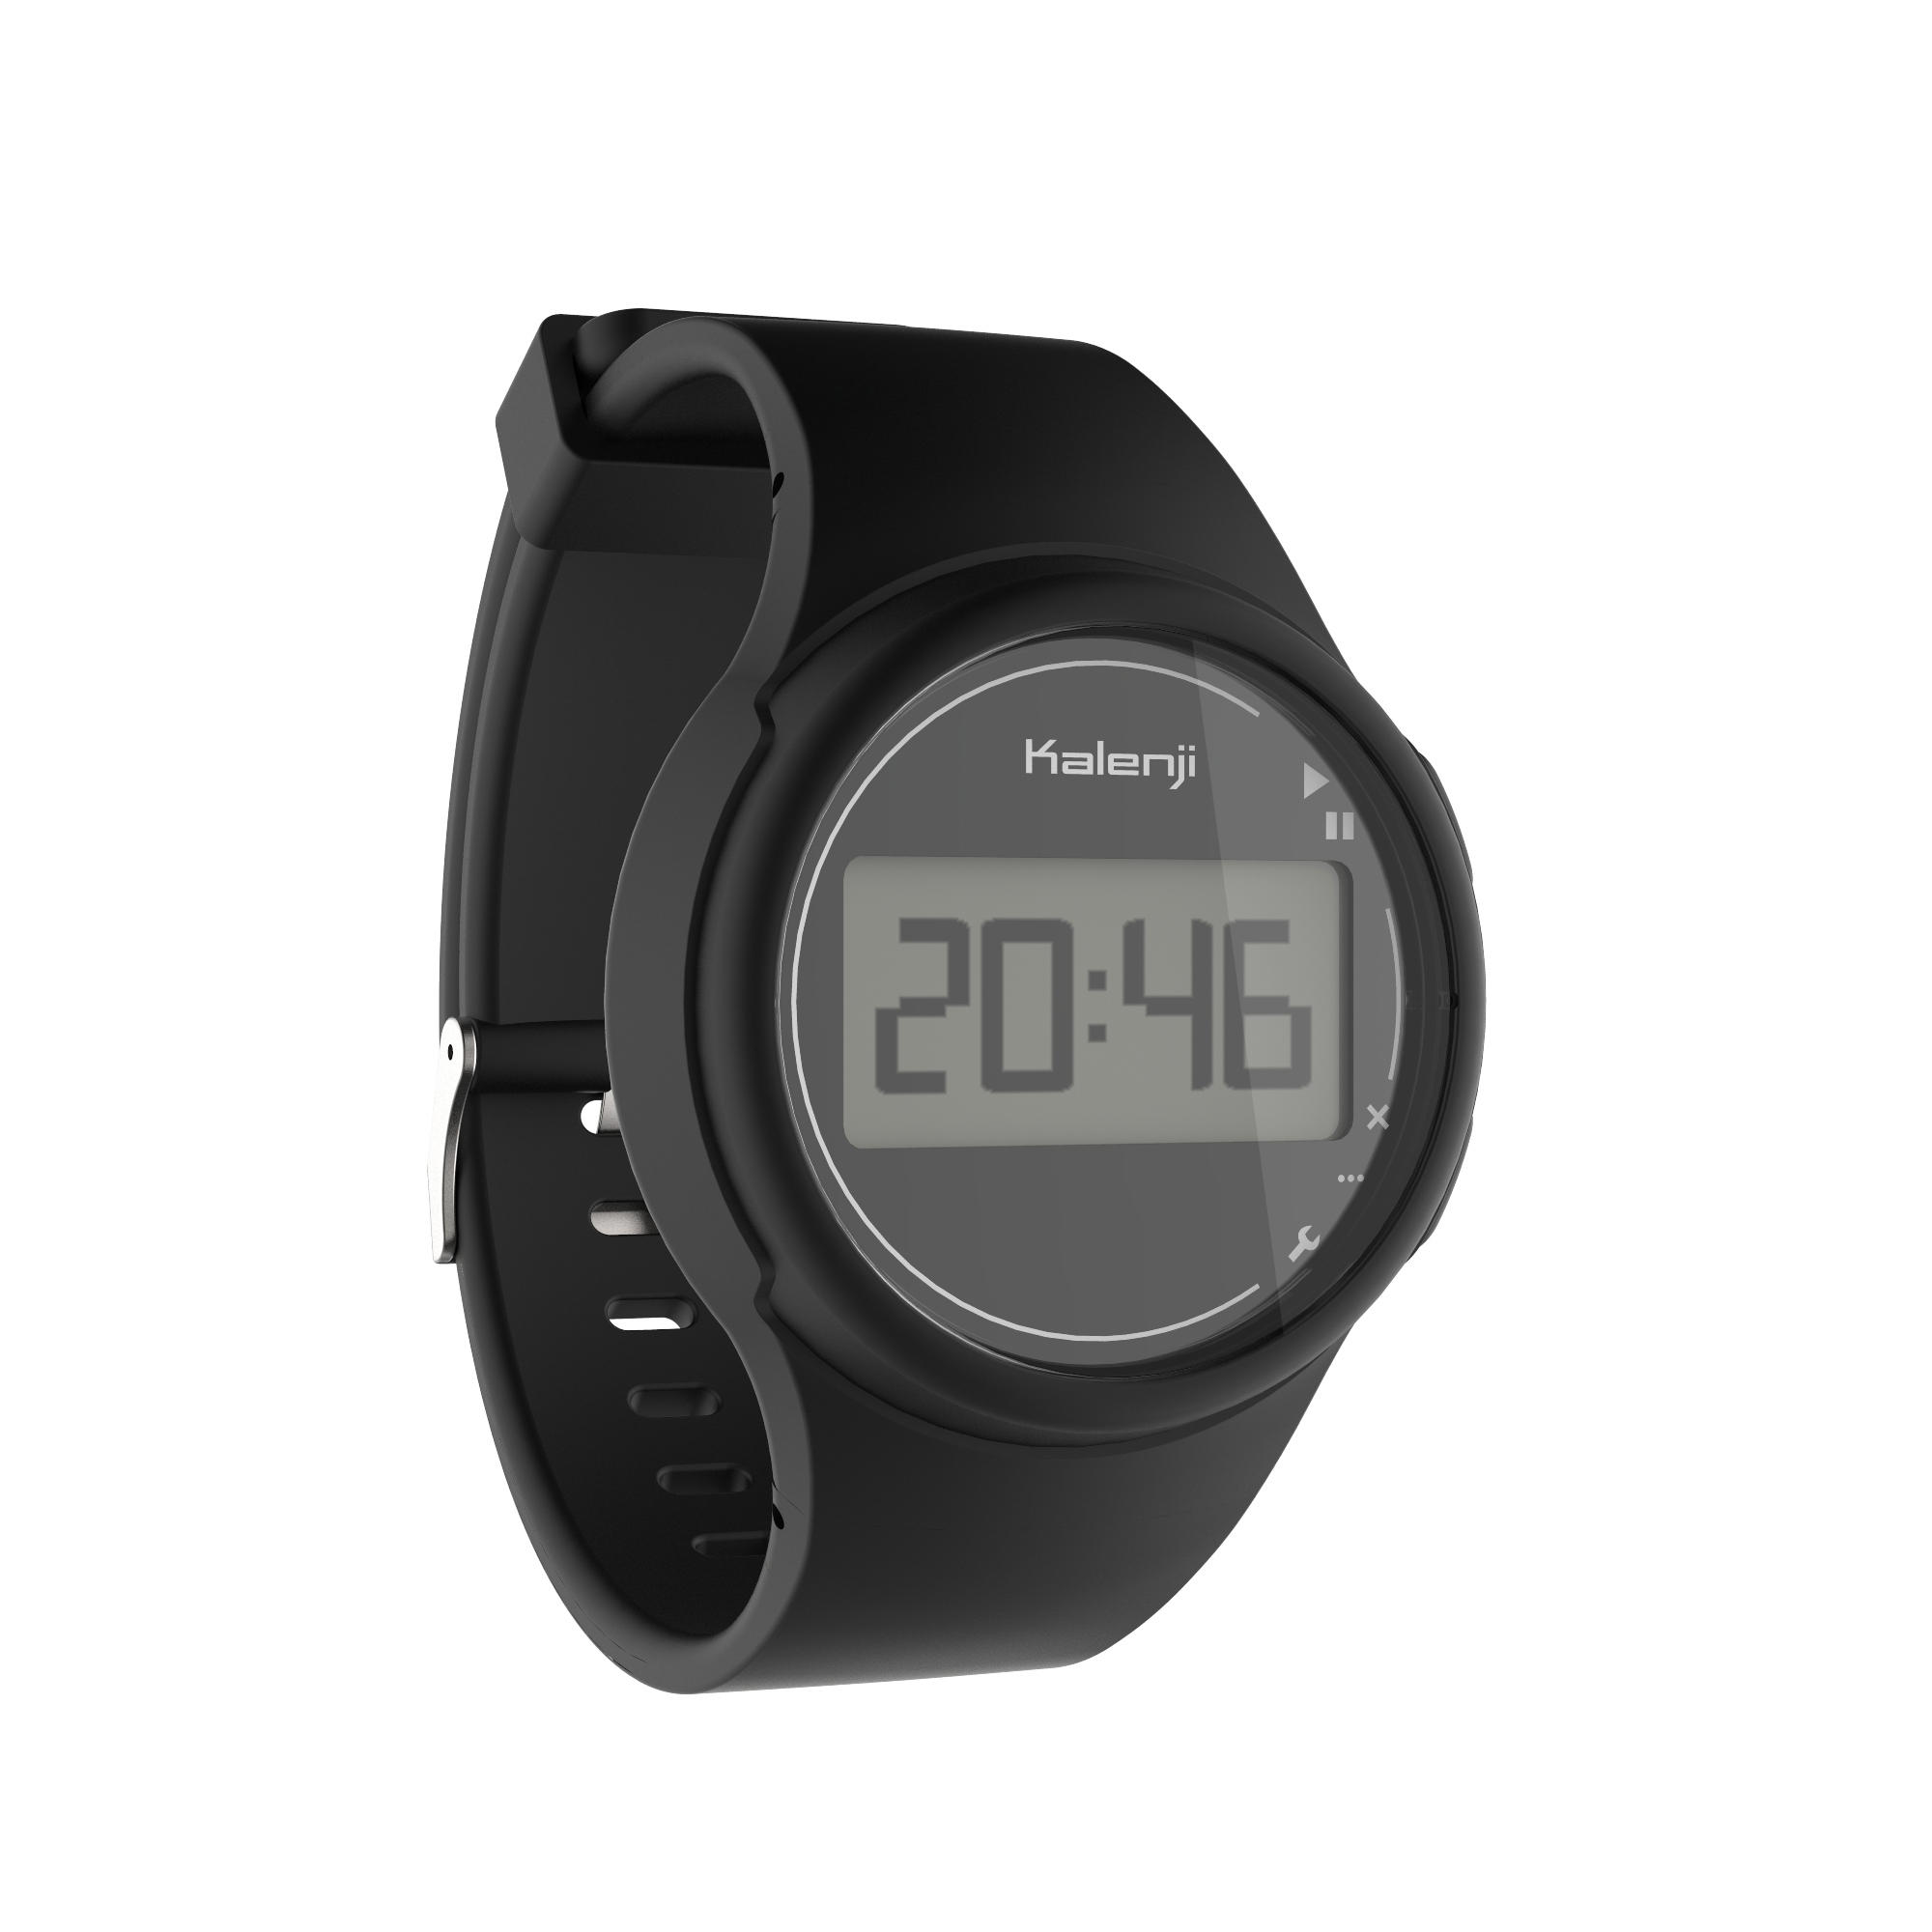 W100 Men's Running Stopwatch - Black